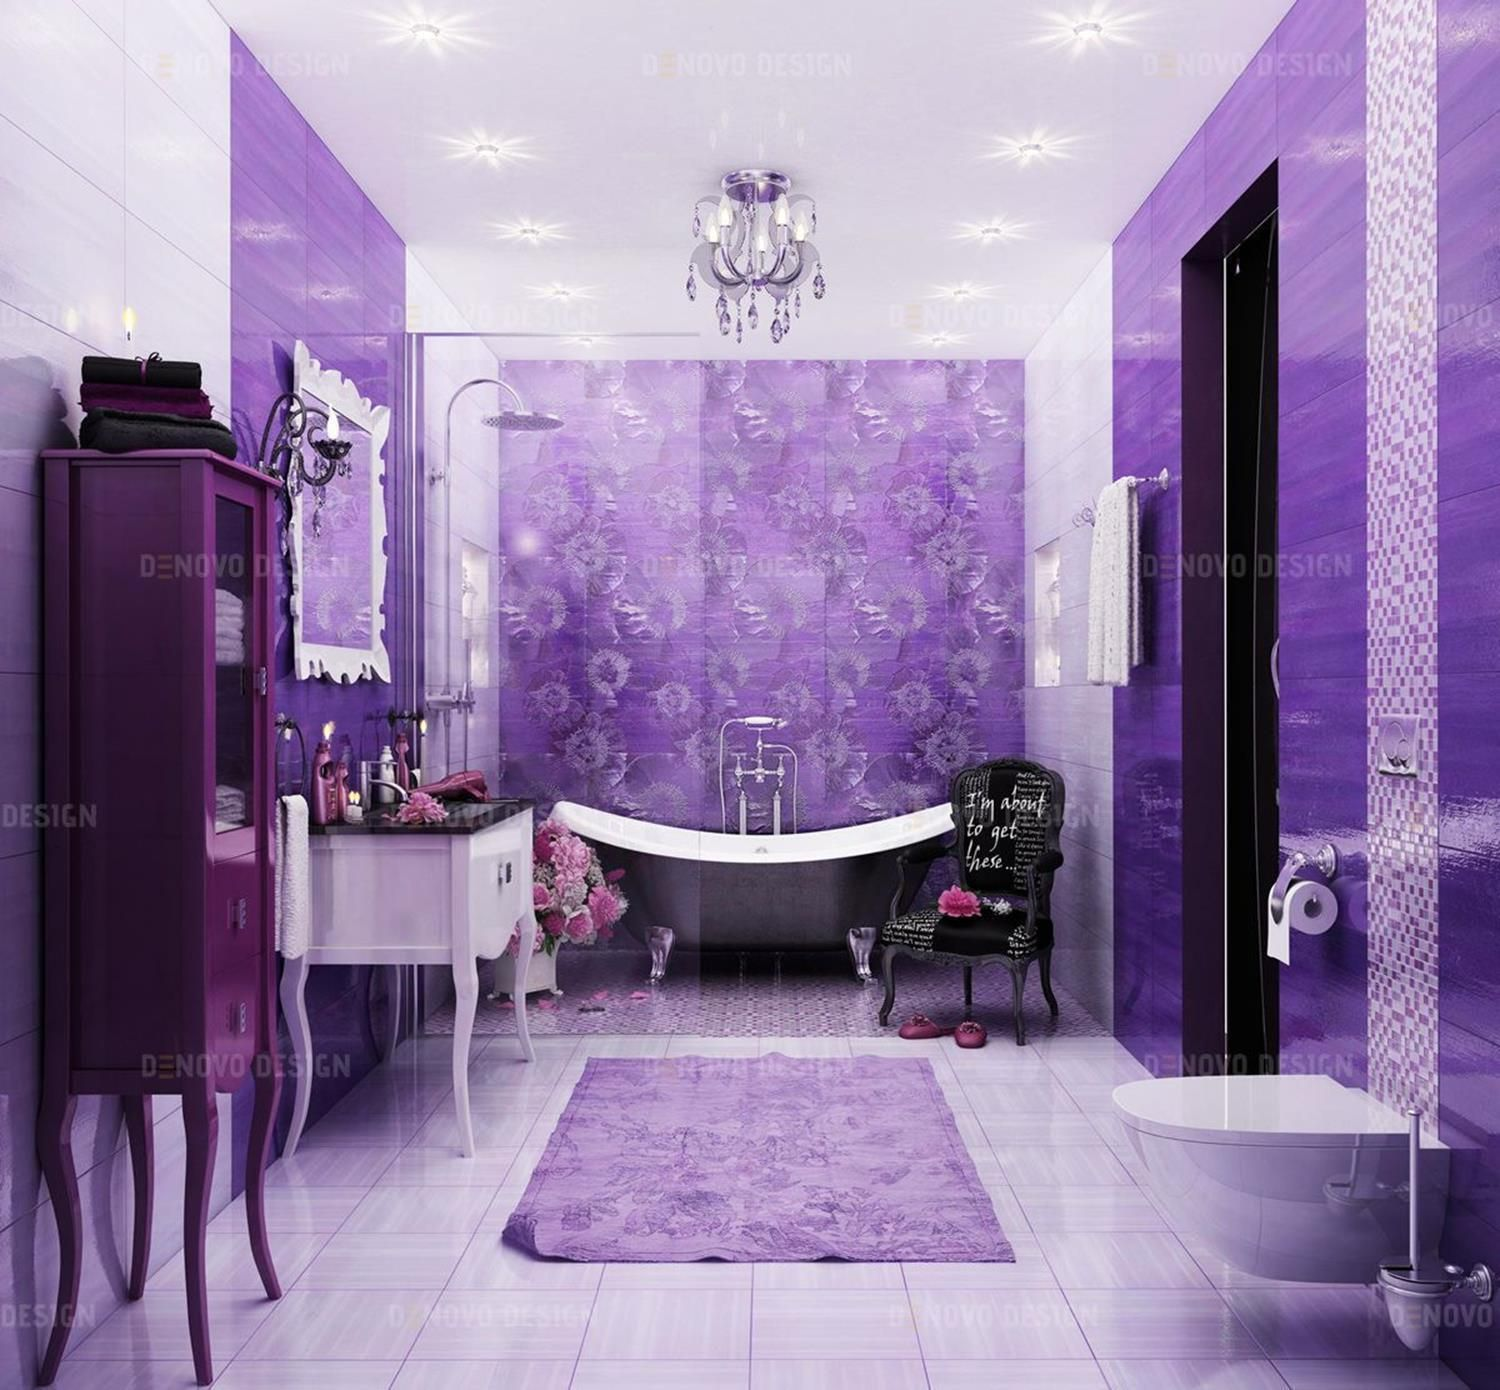 Fabulous colorful vibrant bathrooms ideas you have to